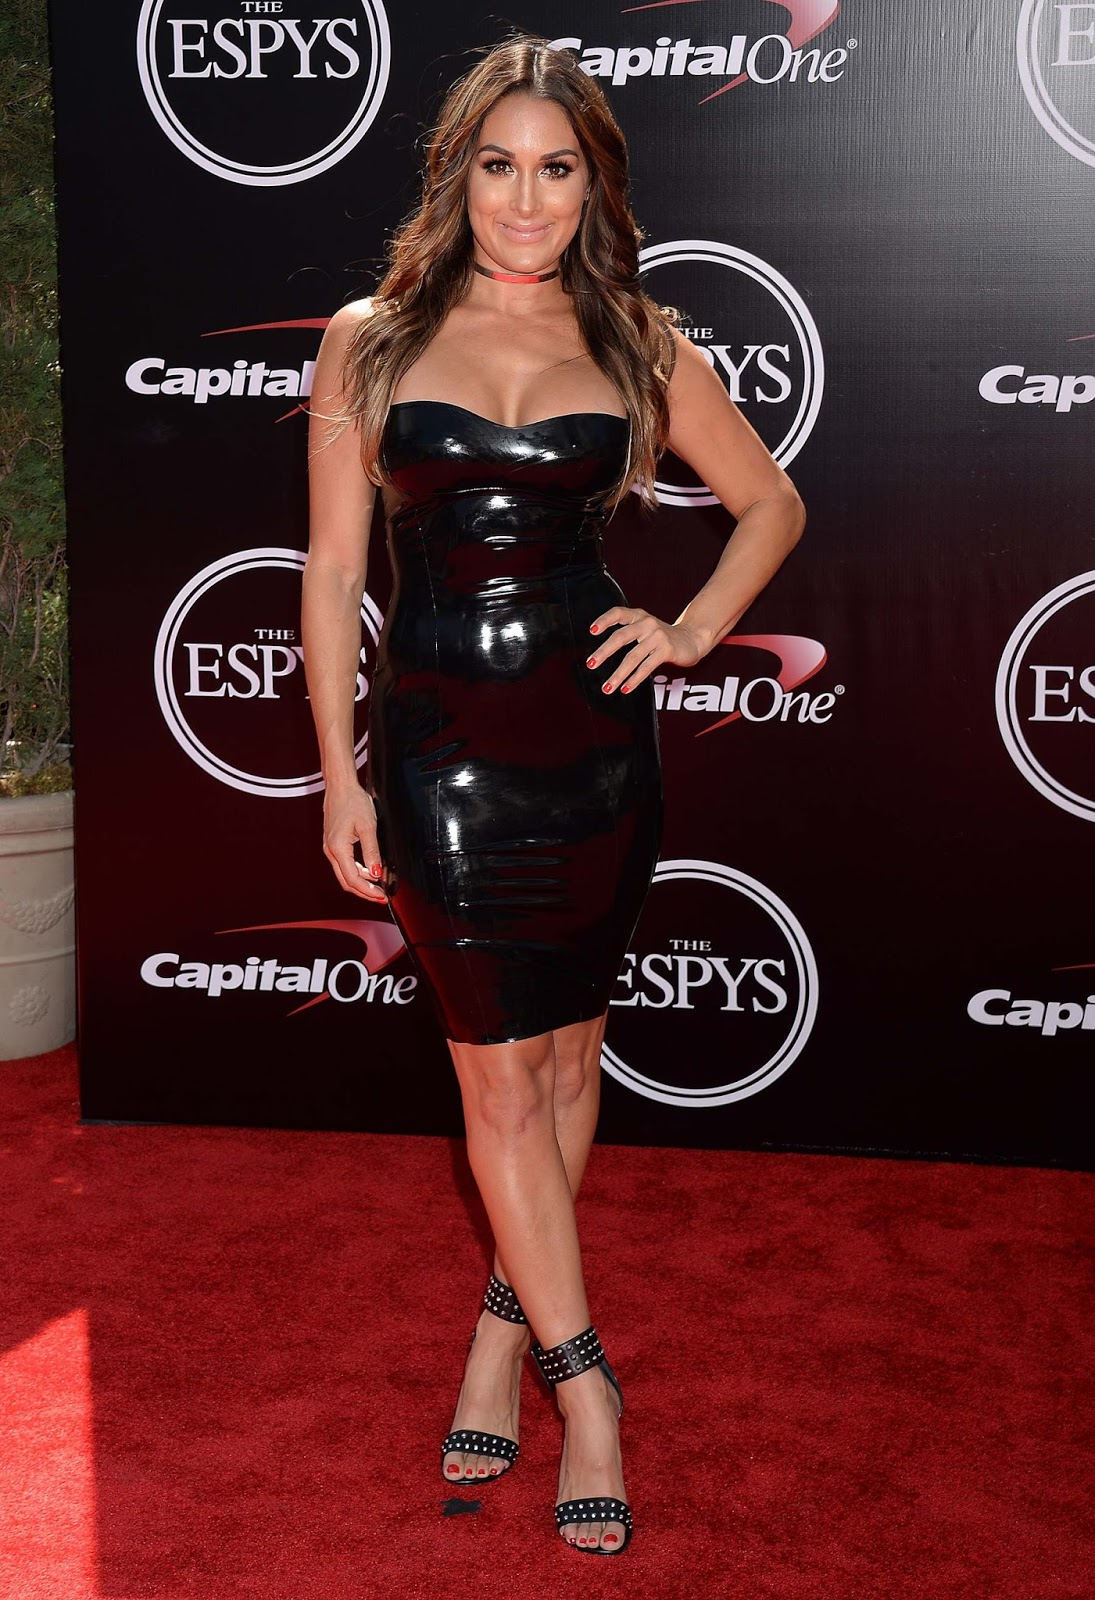 Nikki Bella wears latex dress to the 2016 ESPY Awards in LA